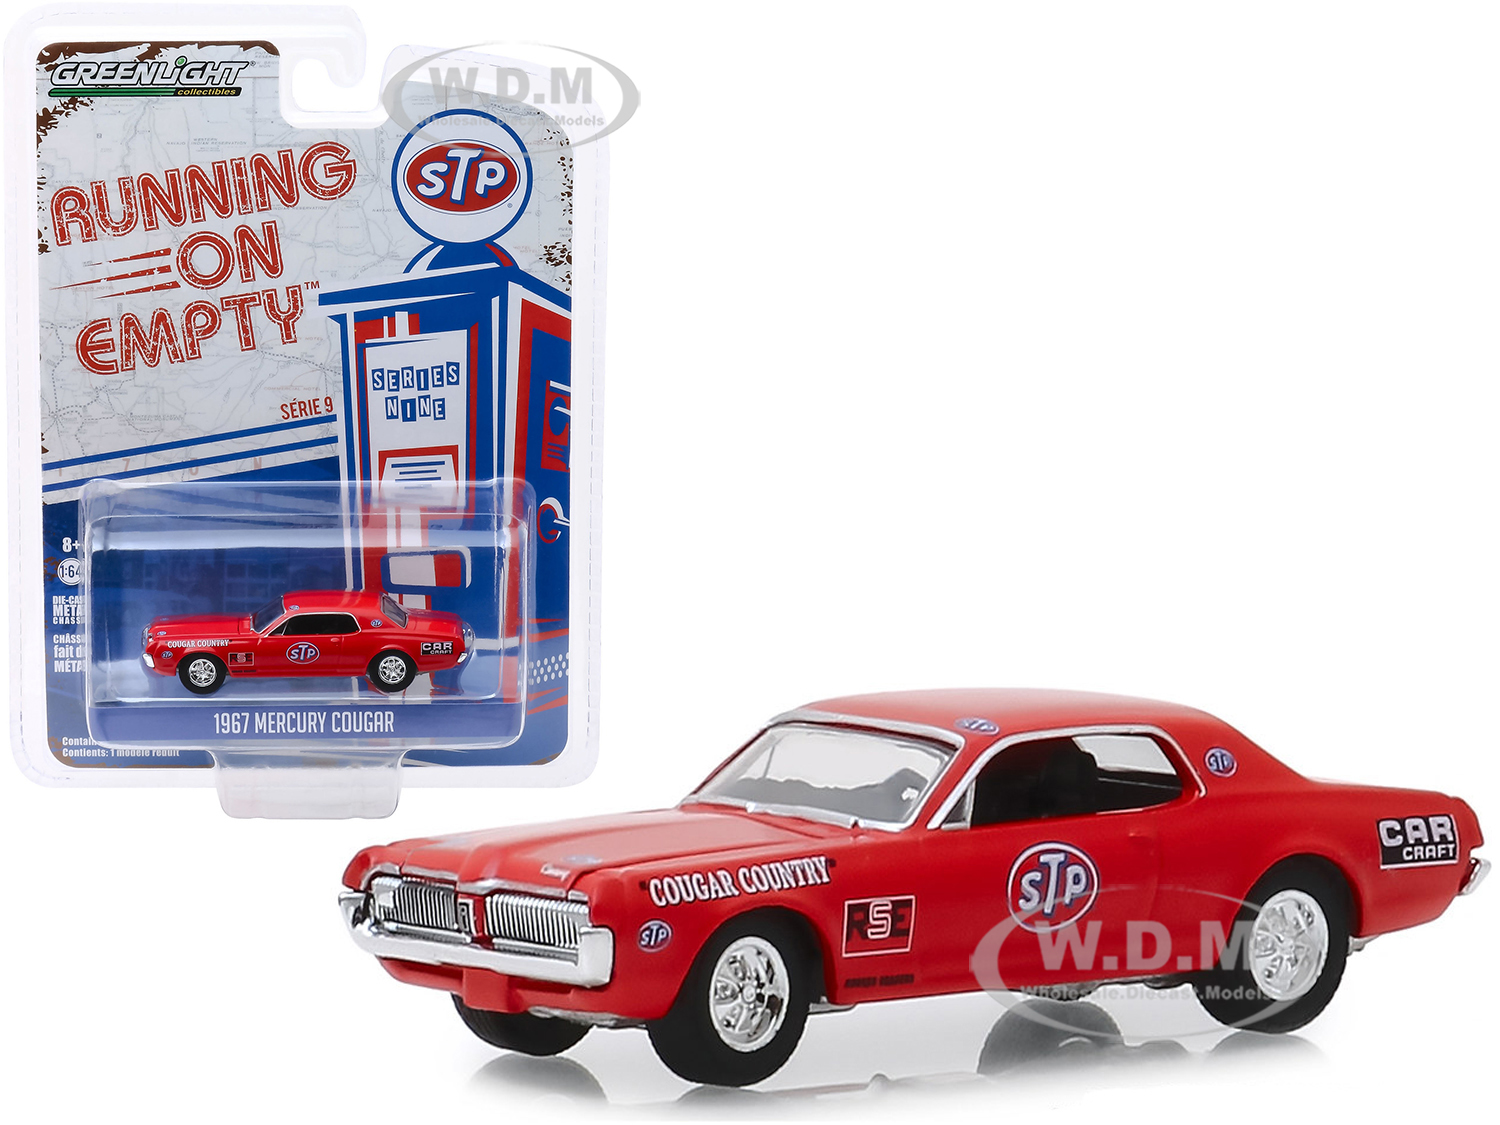 1967 Mercury Cougar Red STP Cougar Country Running on Empty Series 9 1/64 Diecast Model Car by Greenlight